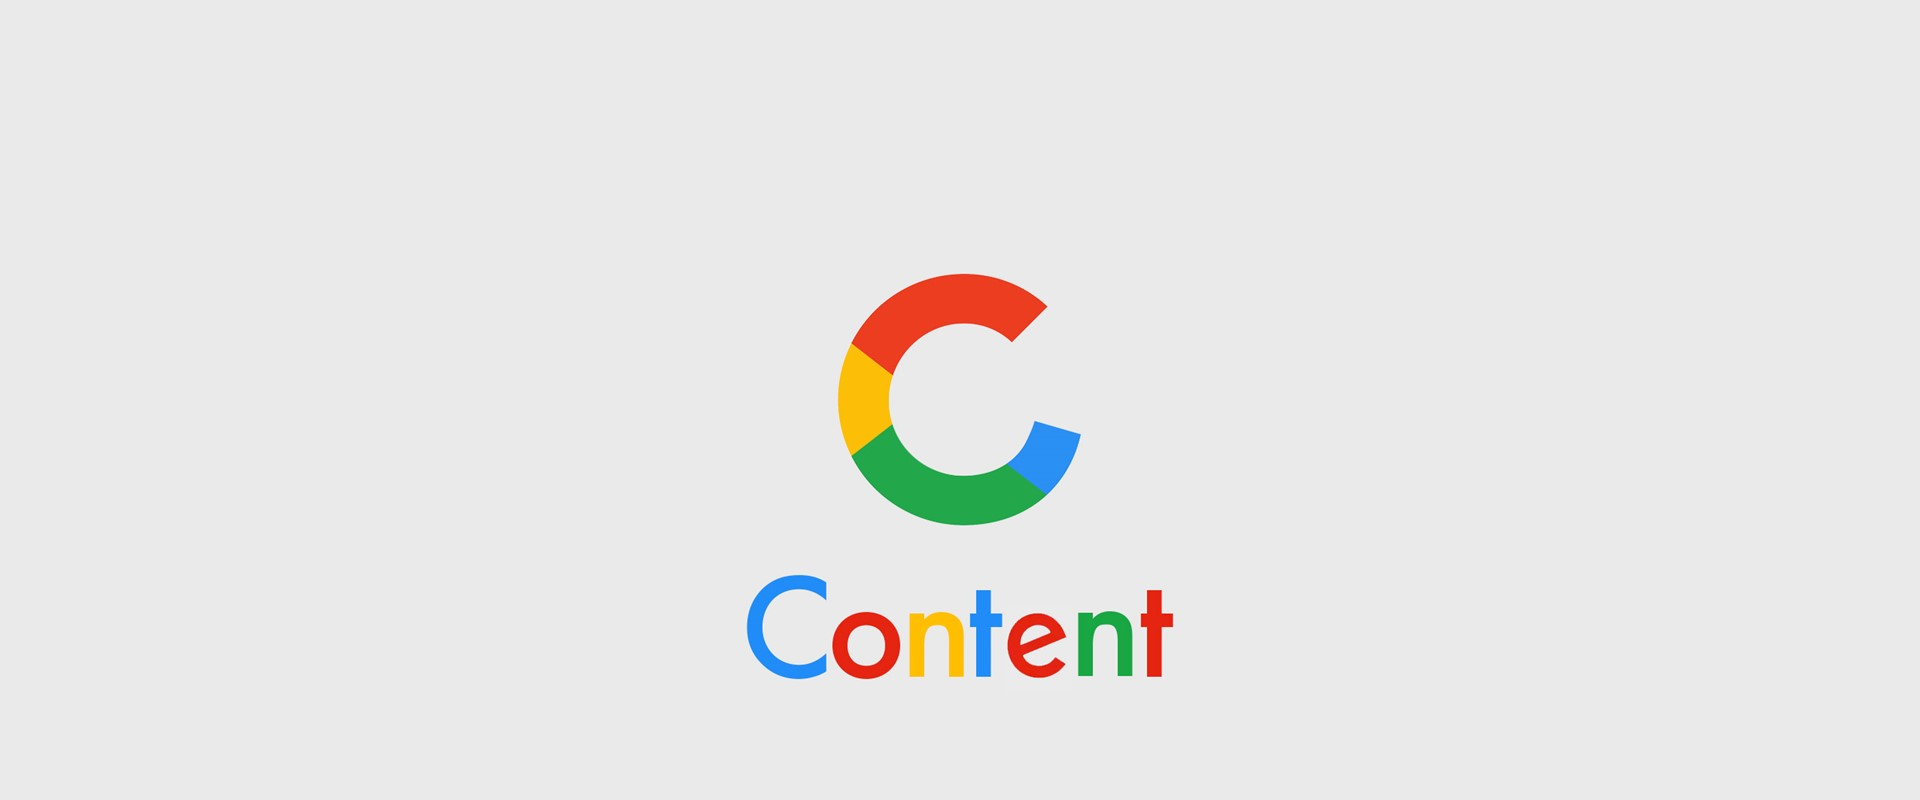 Content is key to Google rankings